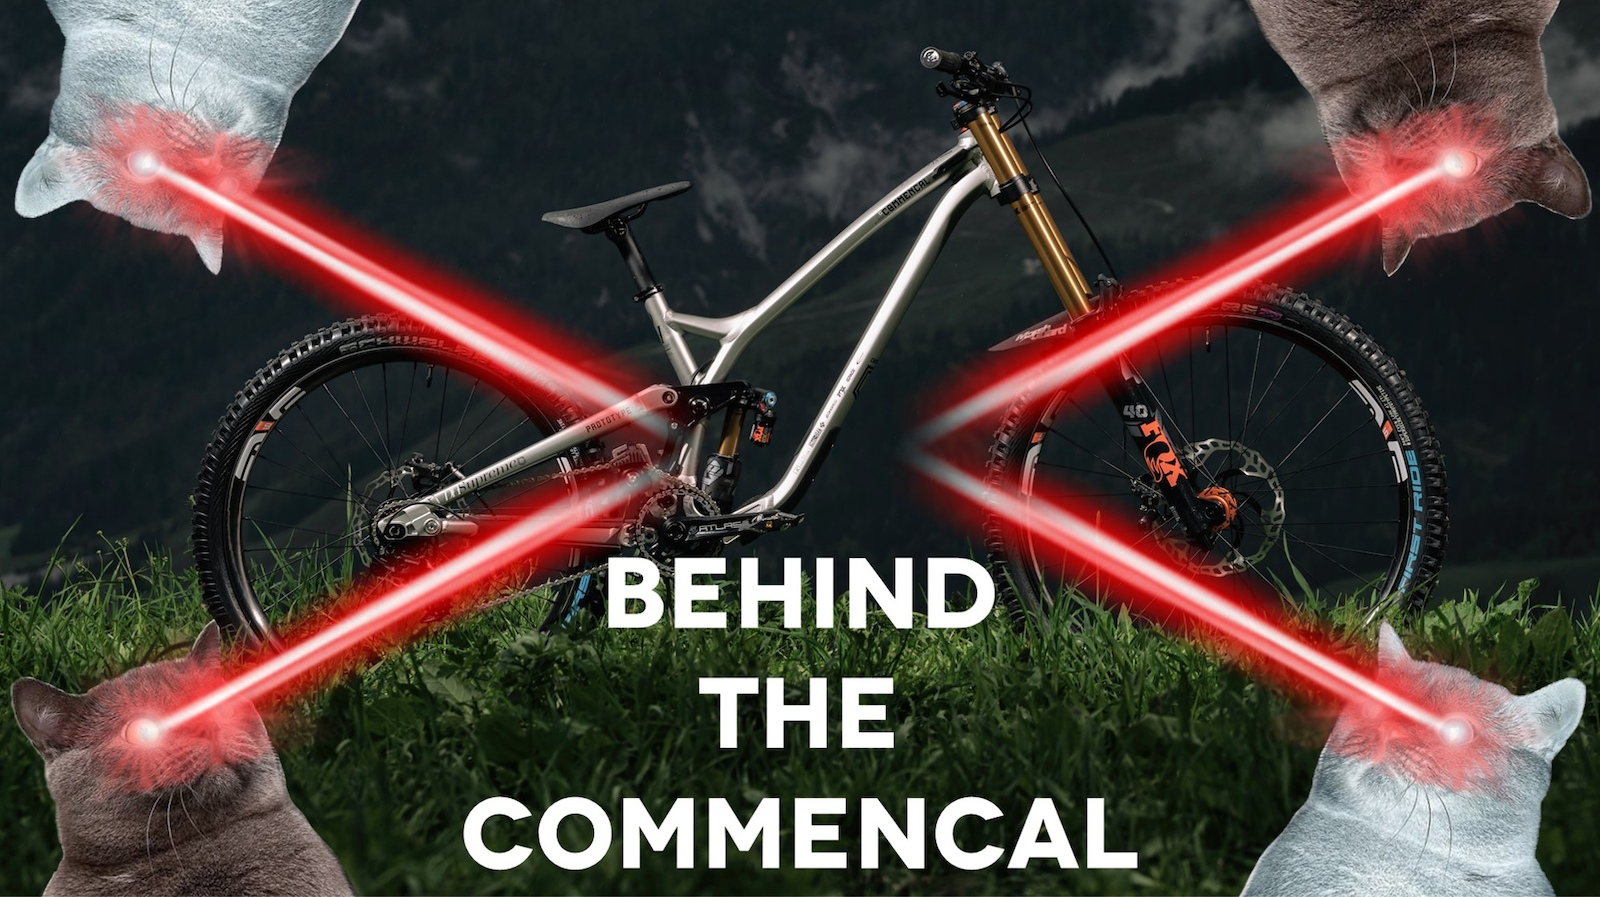 Behind the Commencal Title Image